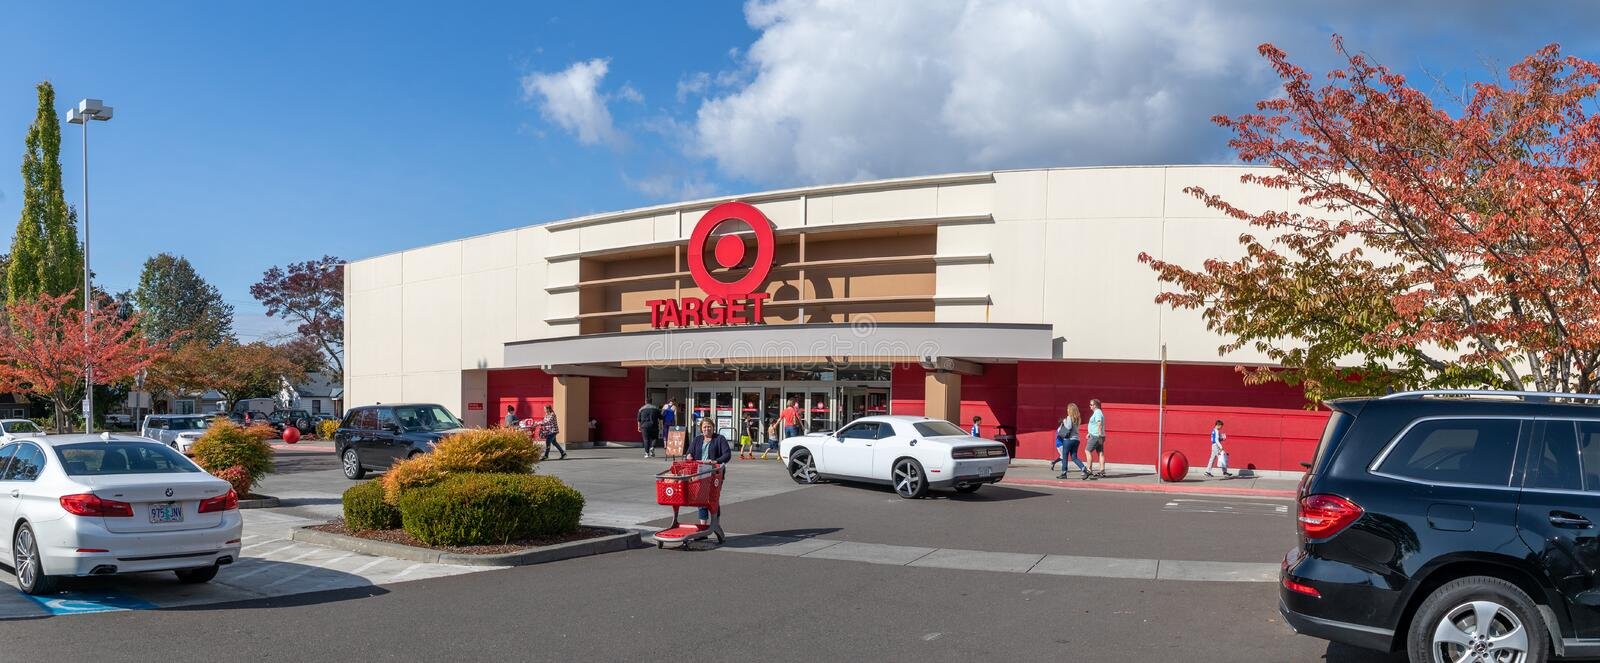 Gate of Marshalls Shopping mall, American off-price department stores in Oregon, USAc. Beaverton, Oregon - Oct 7, 2019 : Exterior view of a Target retail store stock photo